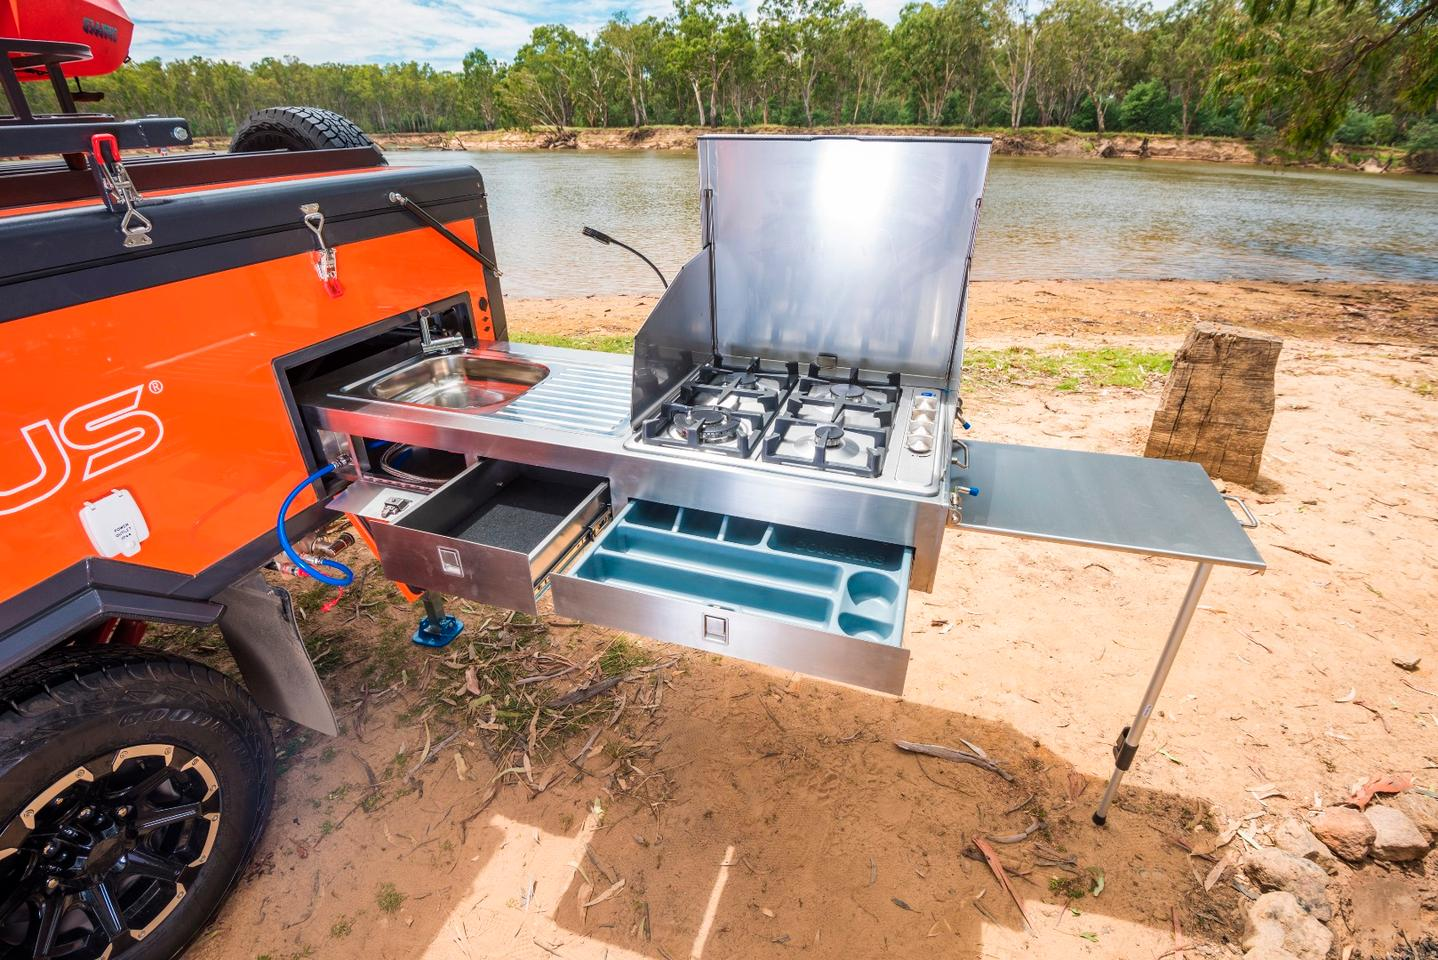 Opus Outback off-road camper takes inflatable comfort